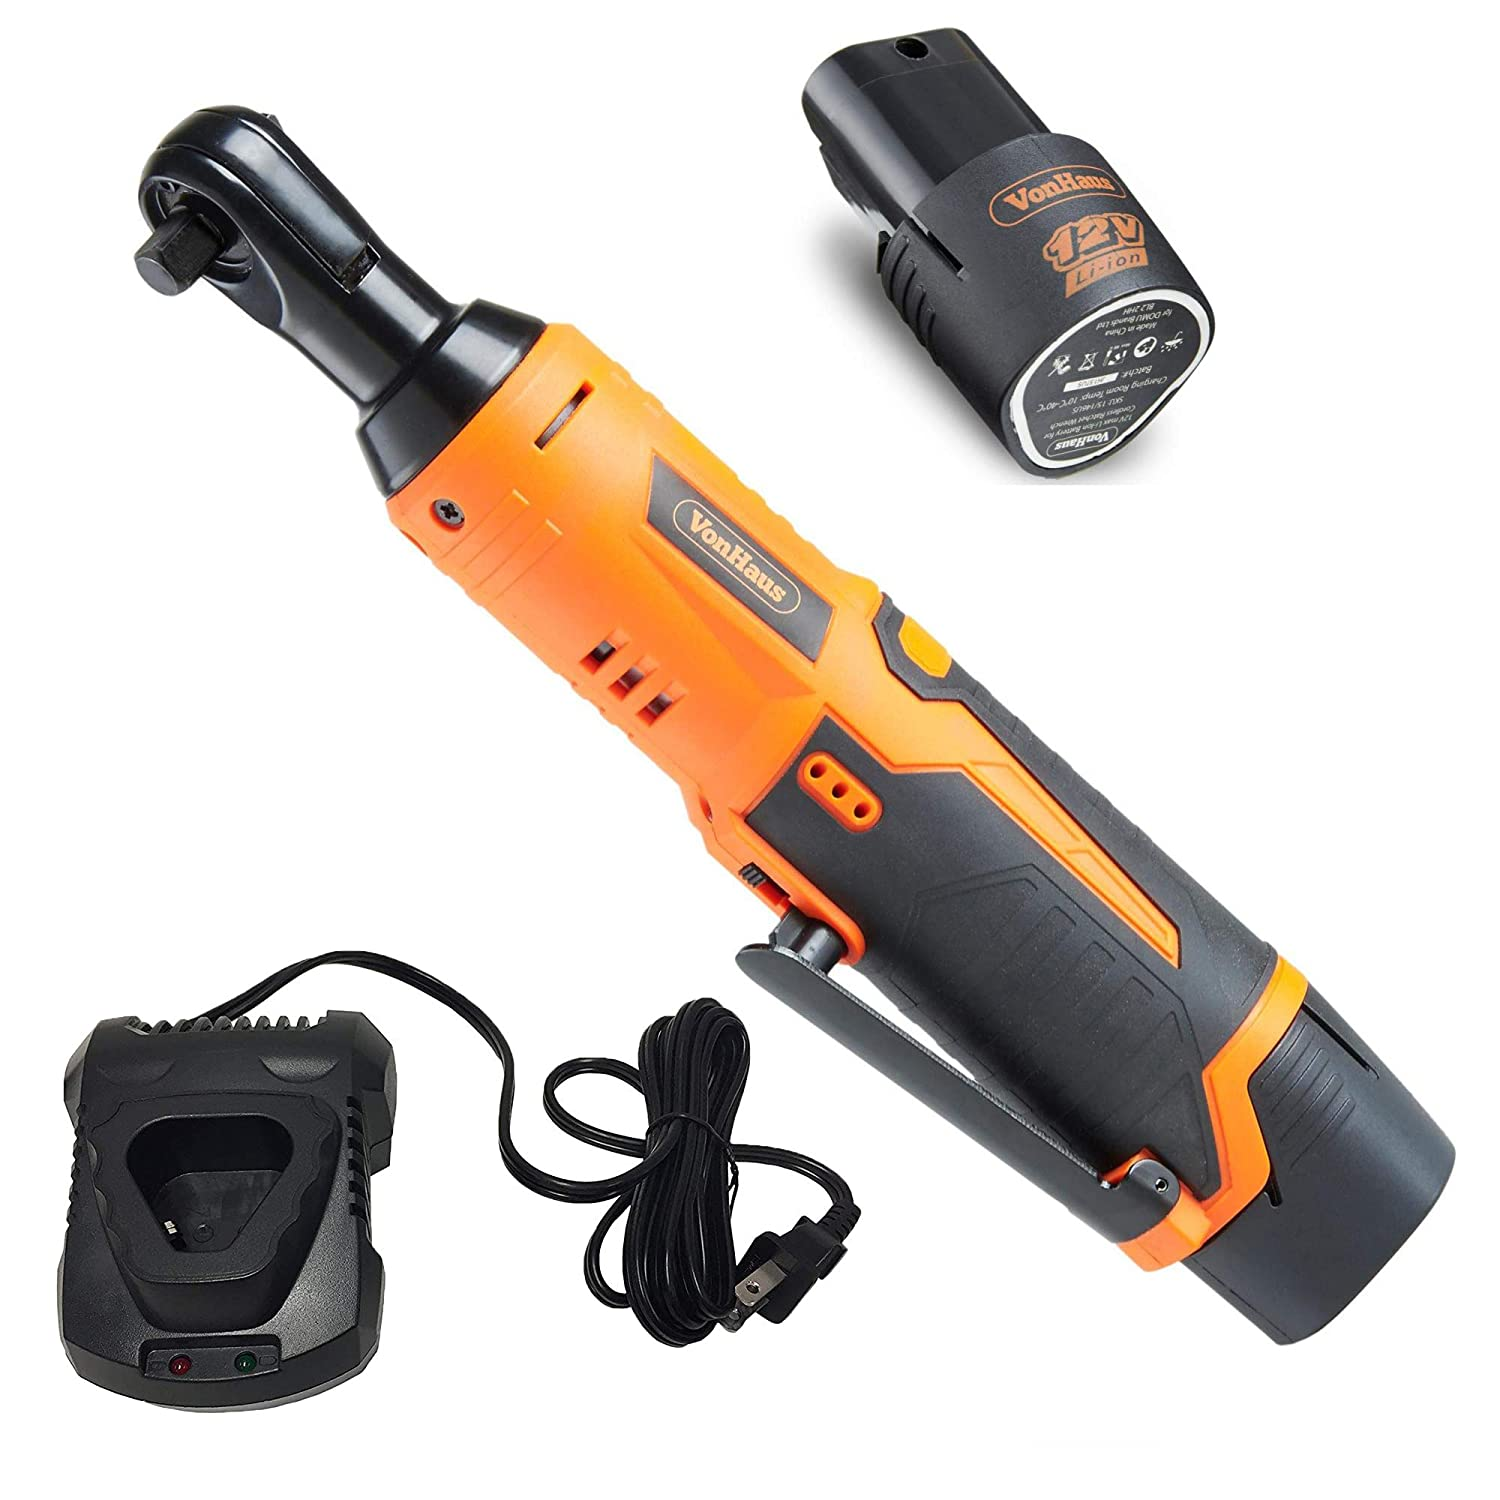 BLACK DECKER RS600K 8.5 Amp Reciprocating Saw Kit With 6-Speed Control